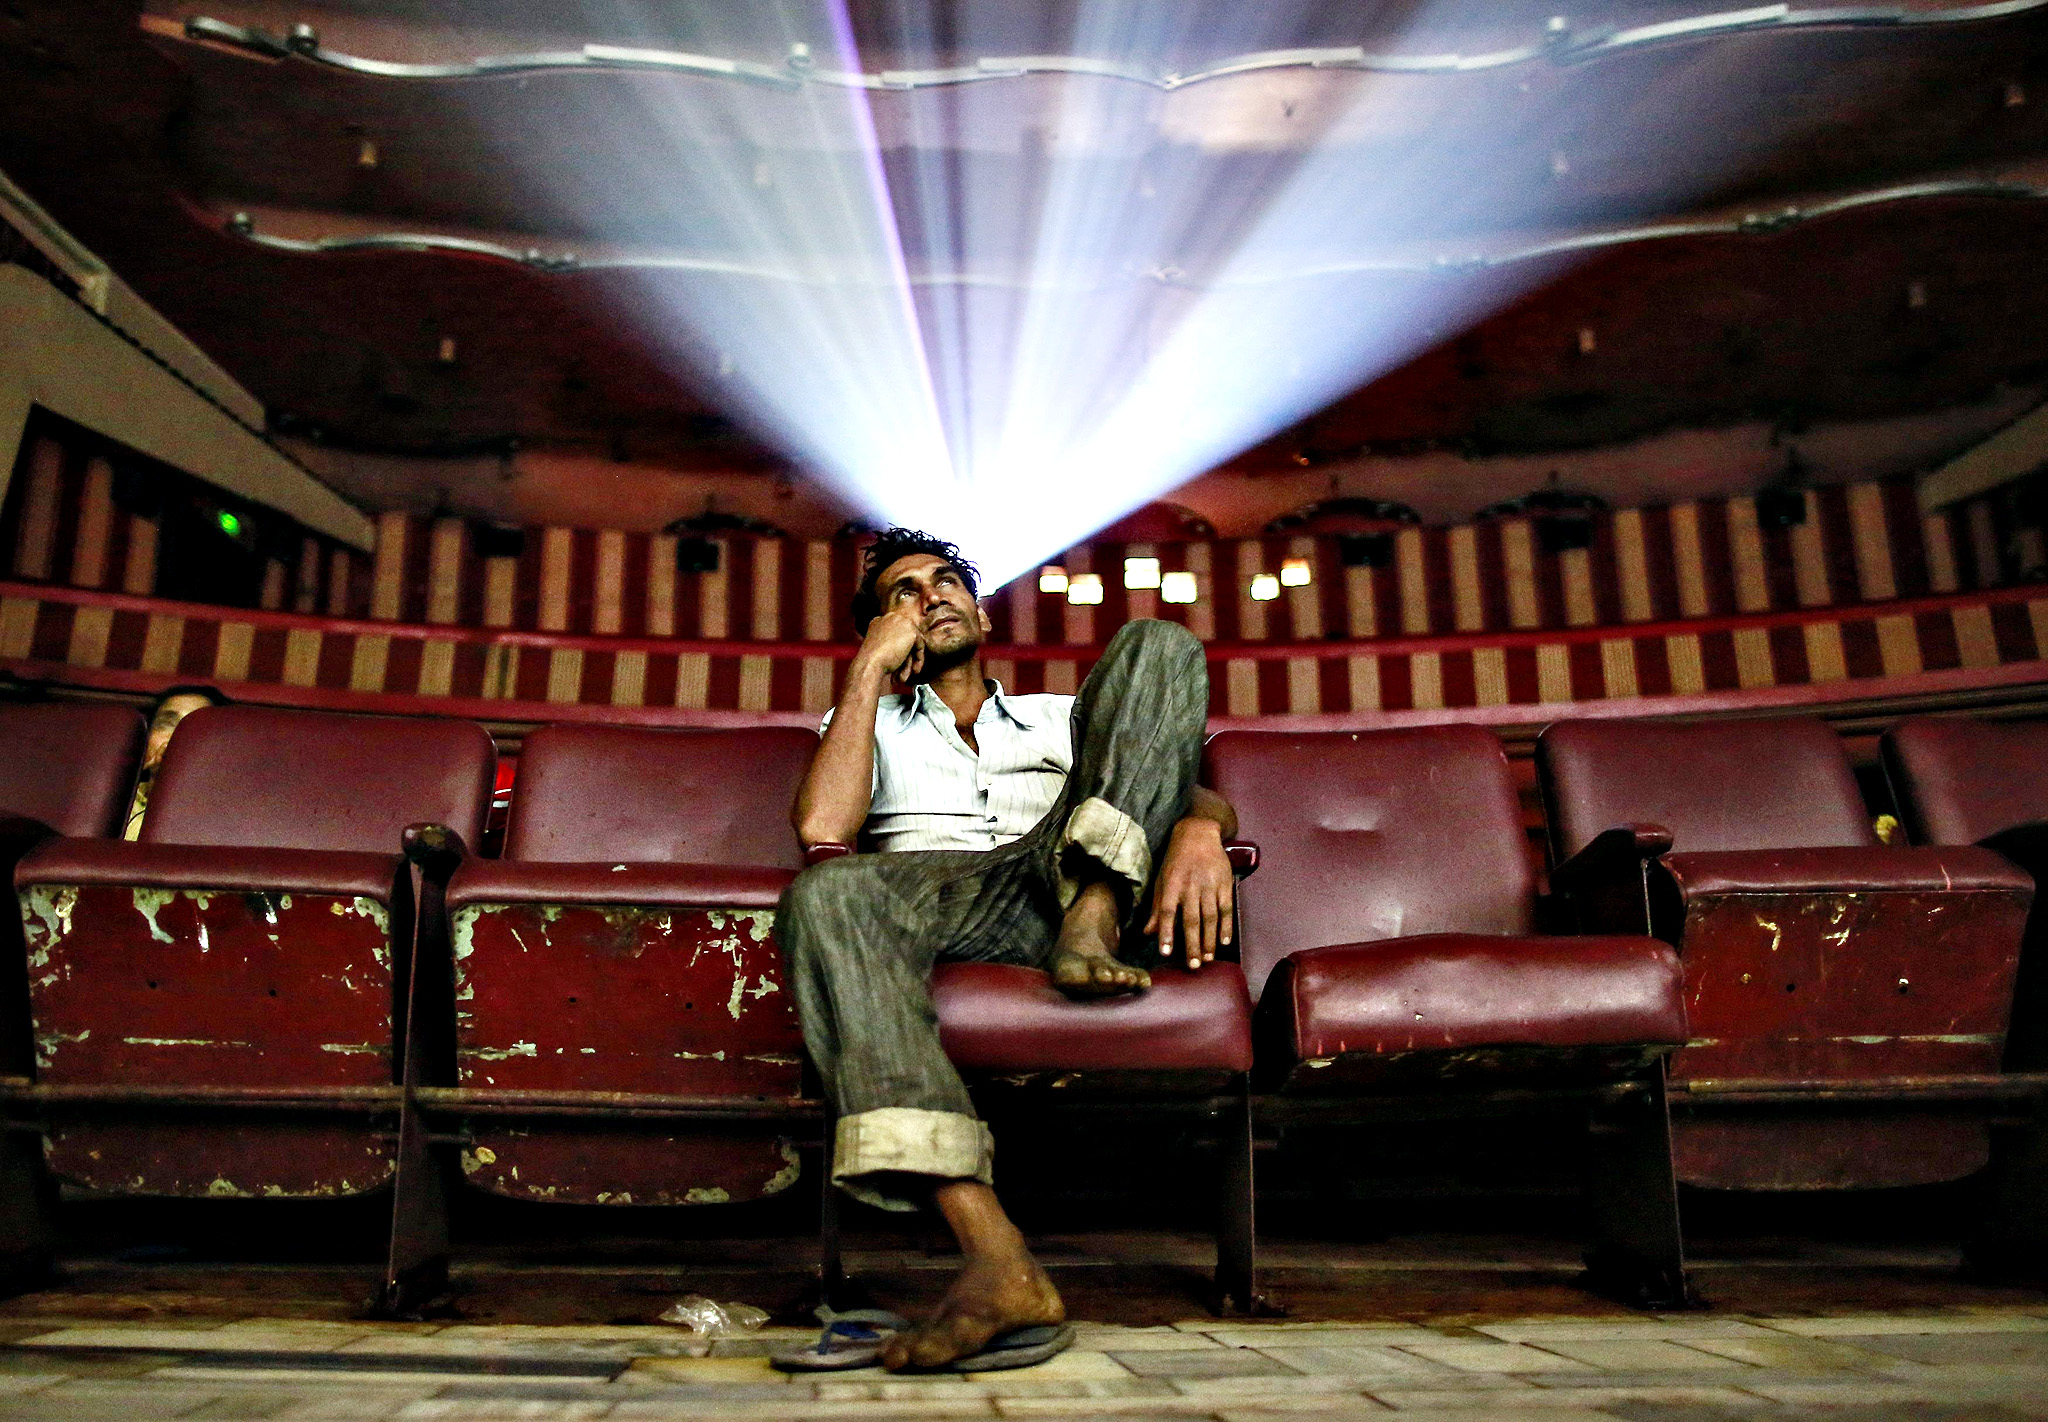 "A cinema goer watches Bollywood movie ""Dilwale Dulhania Le Jayenge"" (The Big Hearted Will Take the Bride), starring actor Shah Rukh Khan, inside Maratha Mandir theatre in Mumbai December 11, 2014. The movie, released in October 1995, has set a record of completing 1000 weeks of continuous screening at a cinema, a feat unmatched by any other Bollywood movies. According to Manoj Desai, owner of the theatre, the movie, which is still being screened, enjoys at least 50 to 60 percent occupancy on weekdays and full house on weekends at his theatre. The movie is screened only in the morning and the ticket price ranges from 15 to 20 Indian rupees ($0.24-$0.32). Picture taken December 11, 2014."